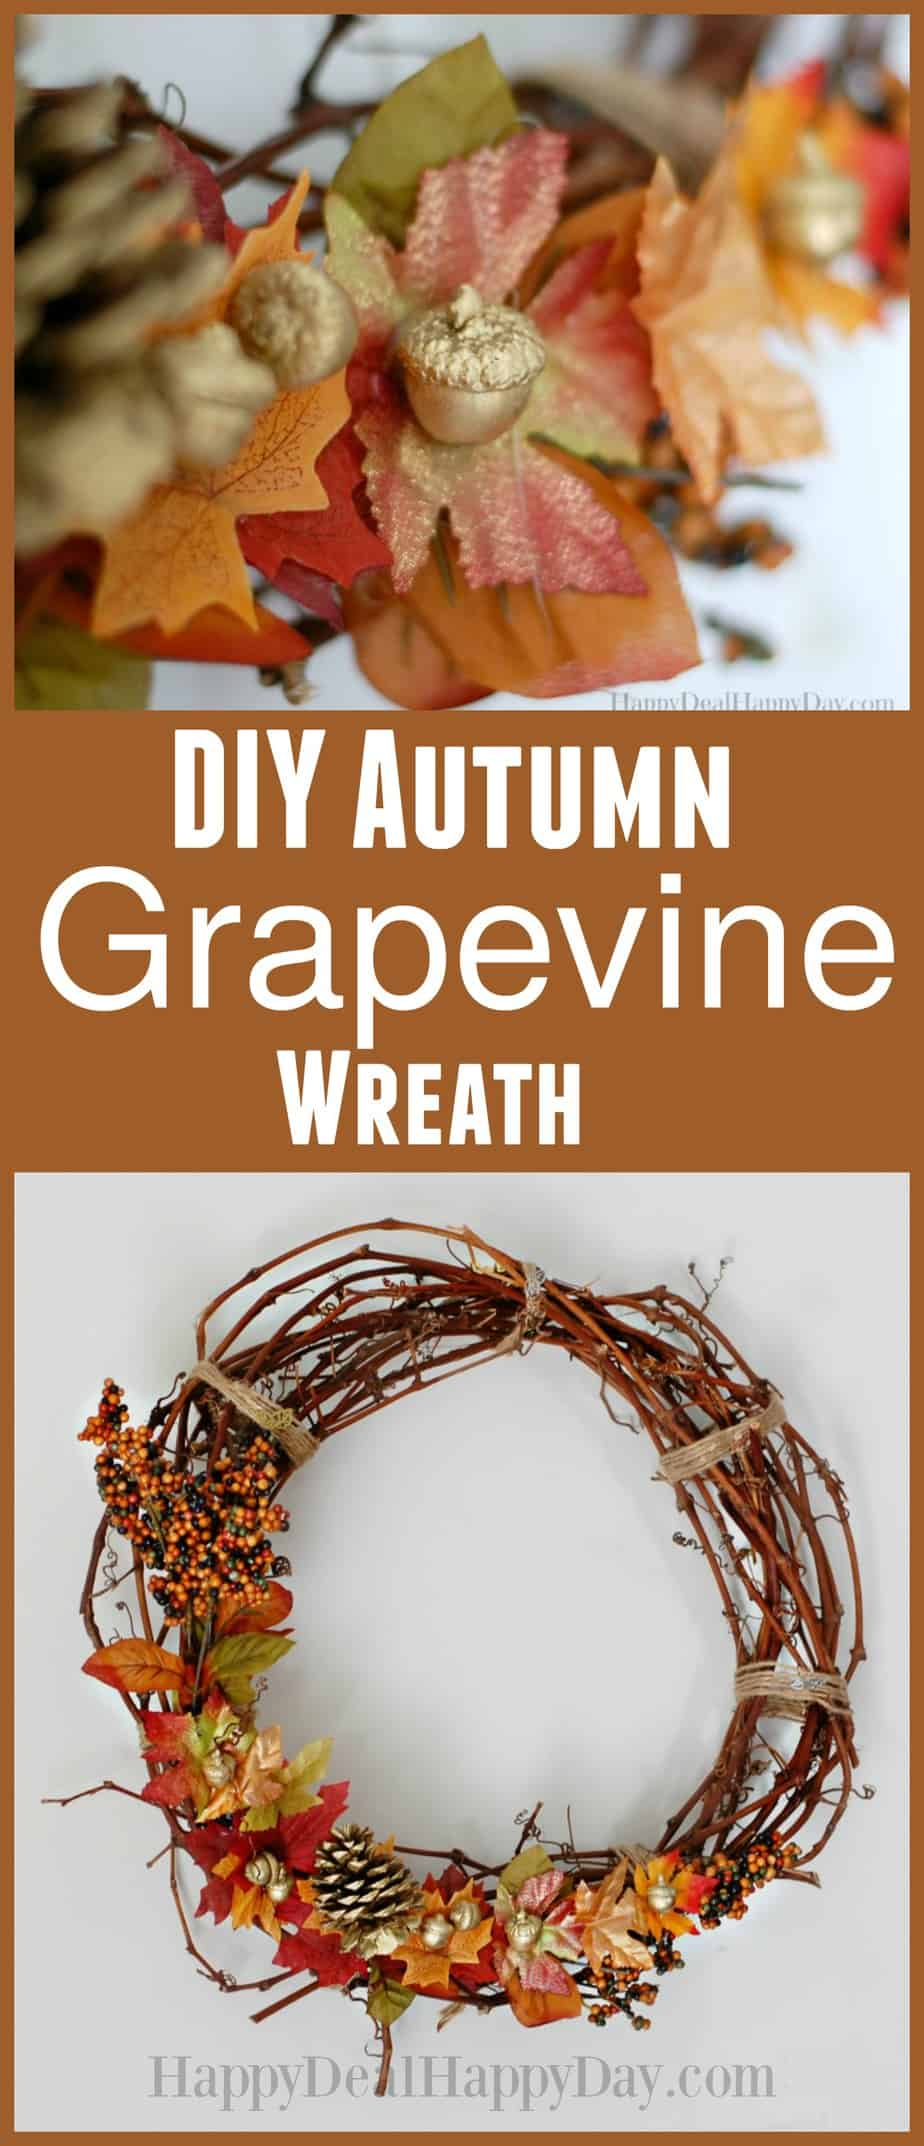 Simple Fall Wreath: How To Make An Autumn Grapevine Wreath